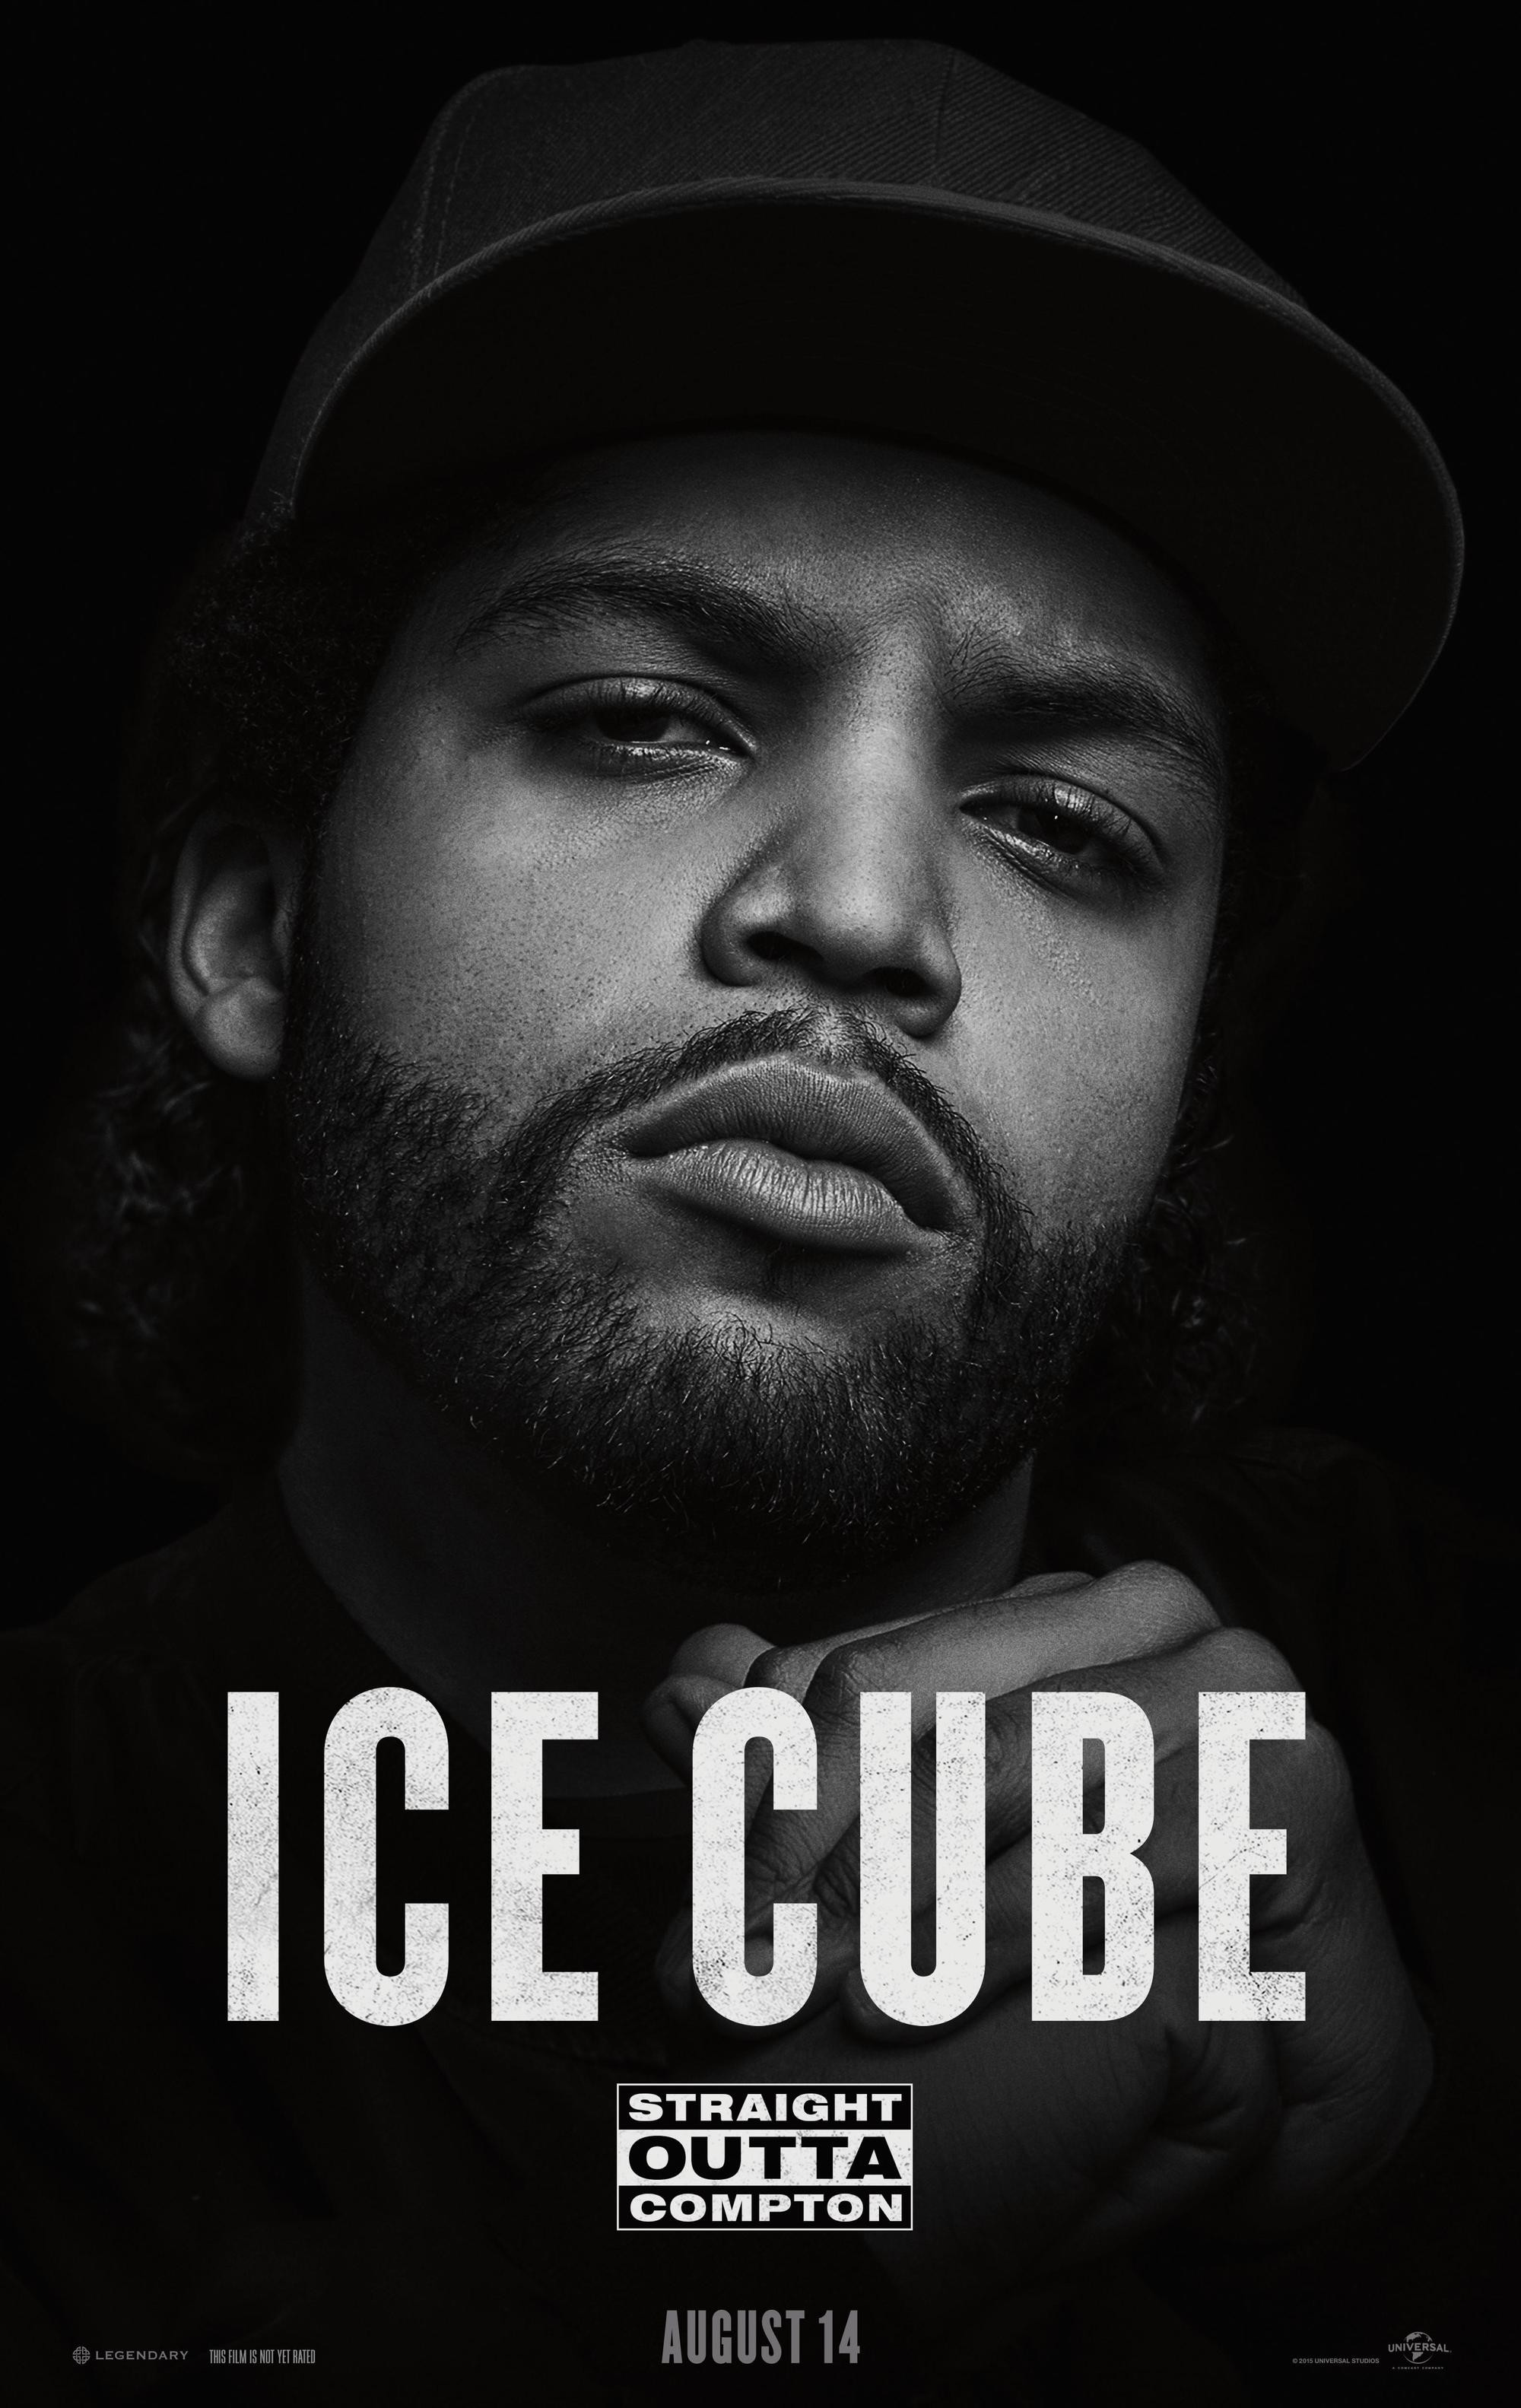 Ice Cube wallpapers for desktop